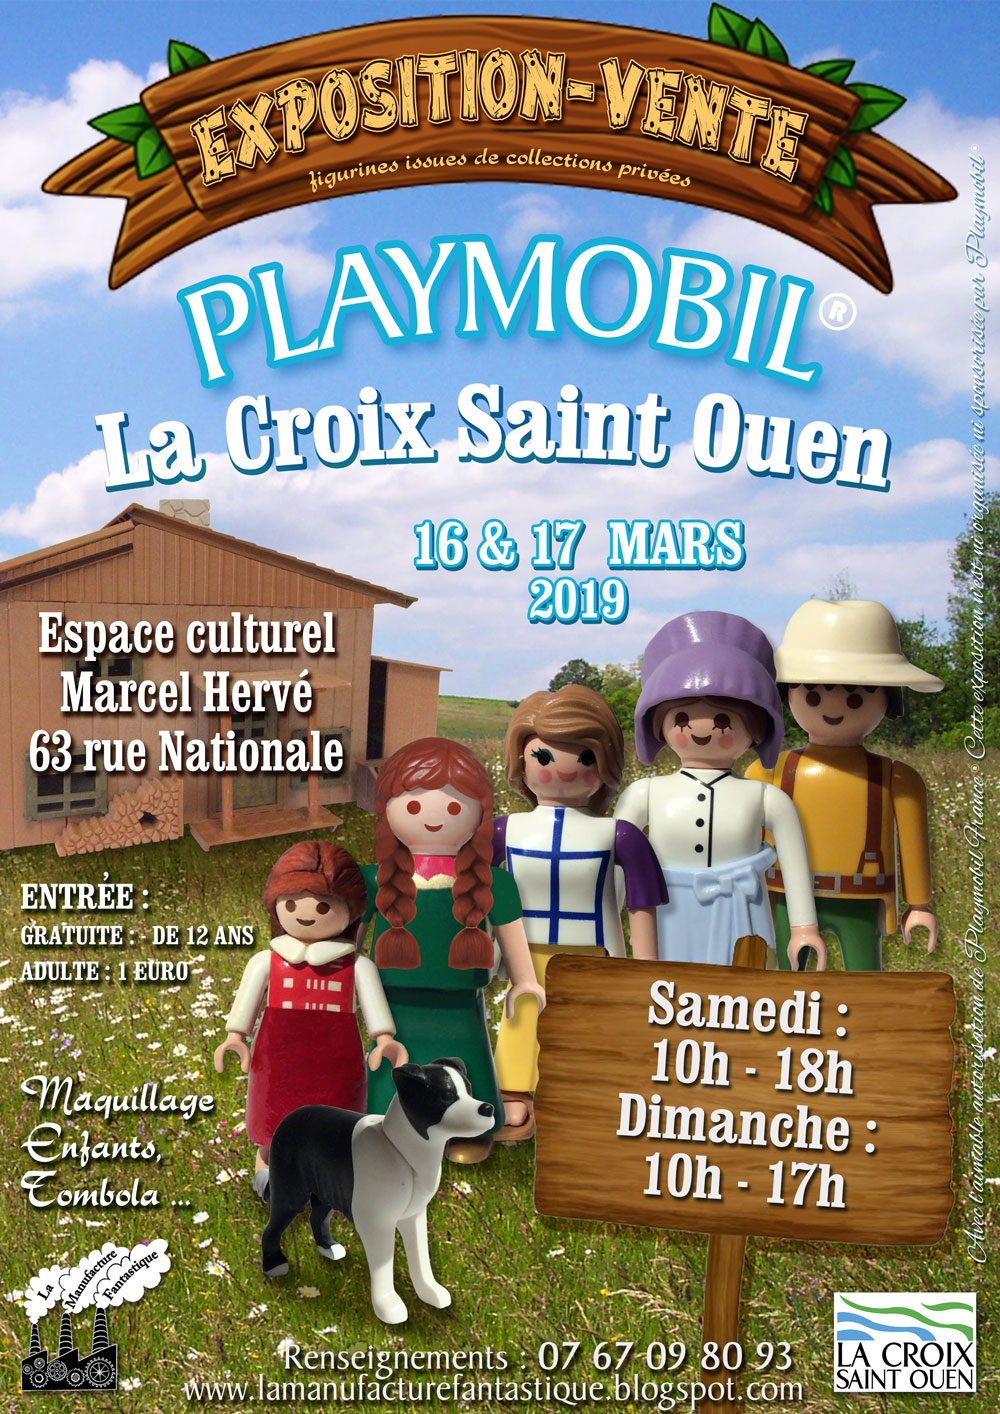 2nd Bourse Expo Playmobil Lacroix St Ouen